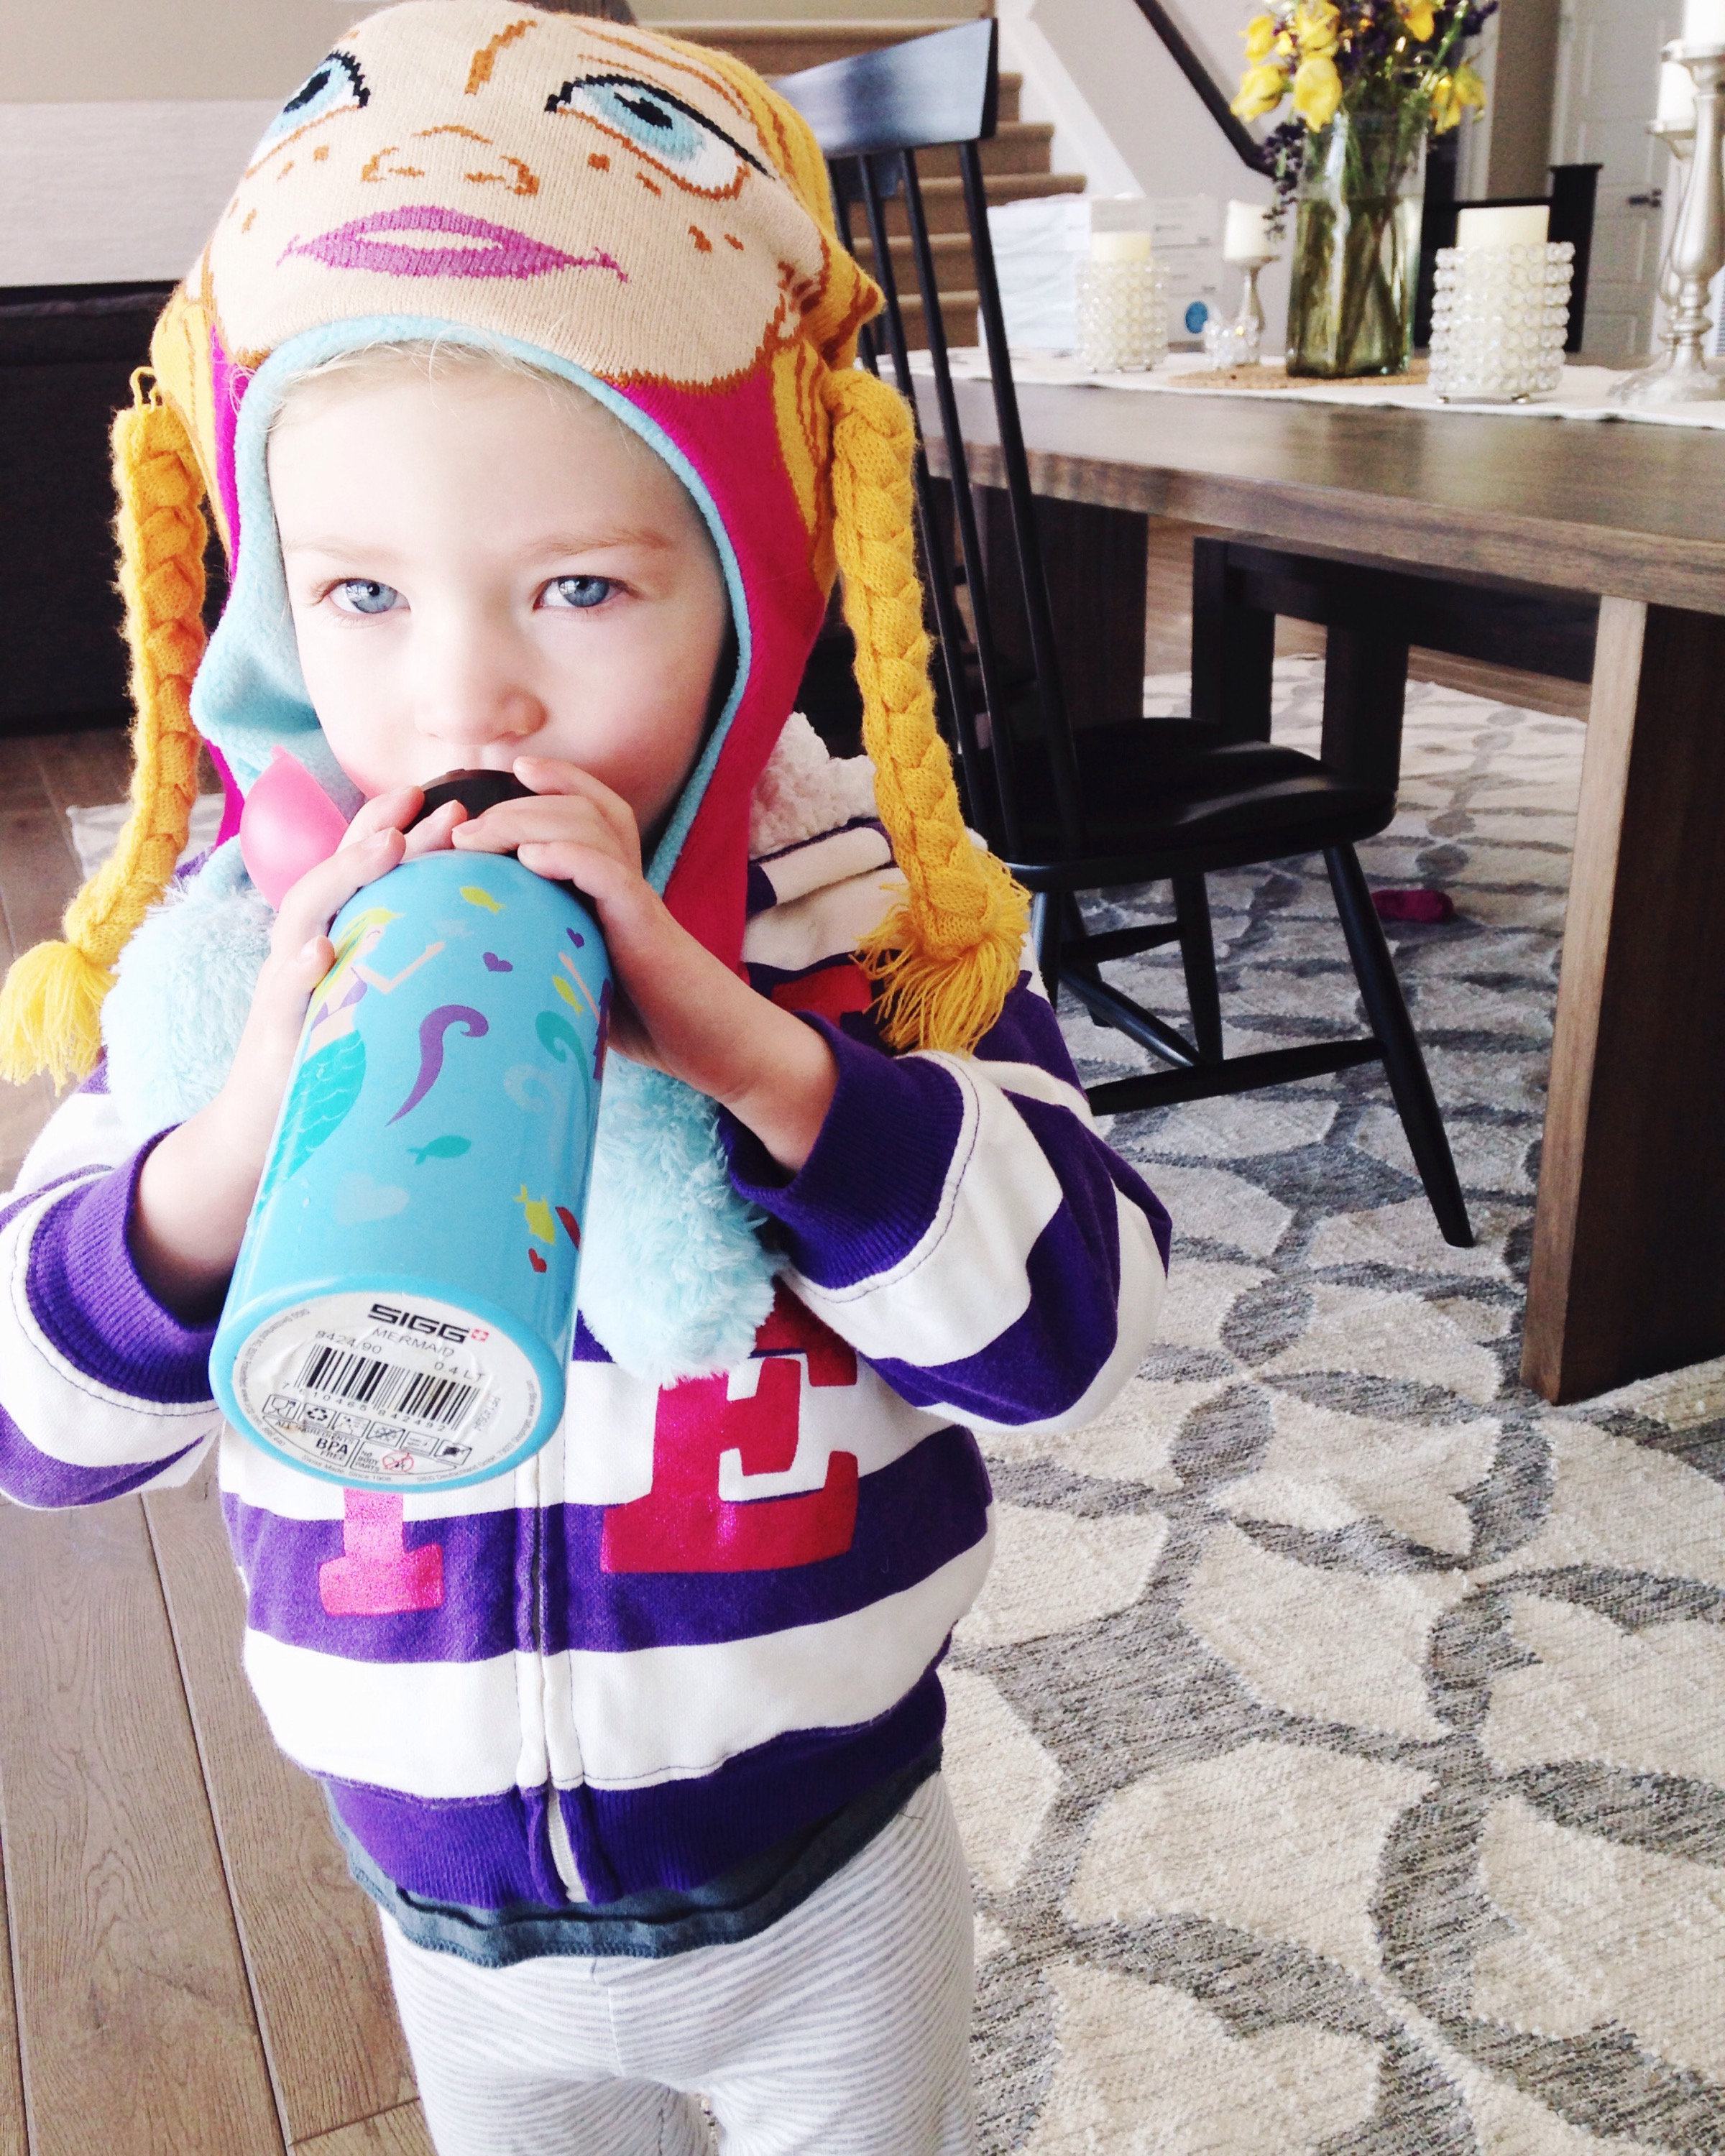 4 Reasons to Stop Using Plastic Sippy Cups